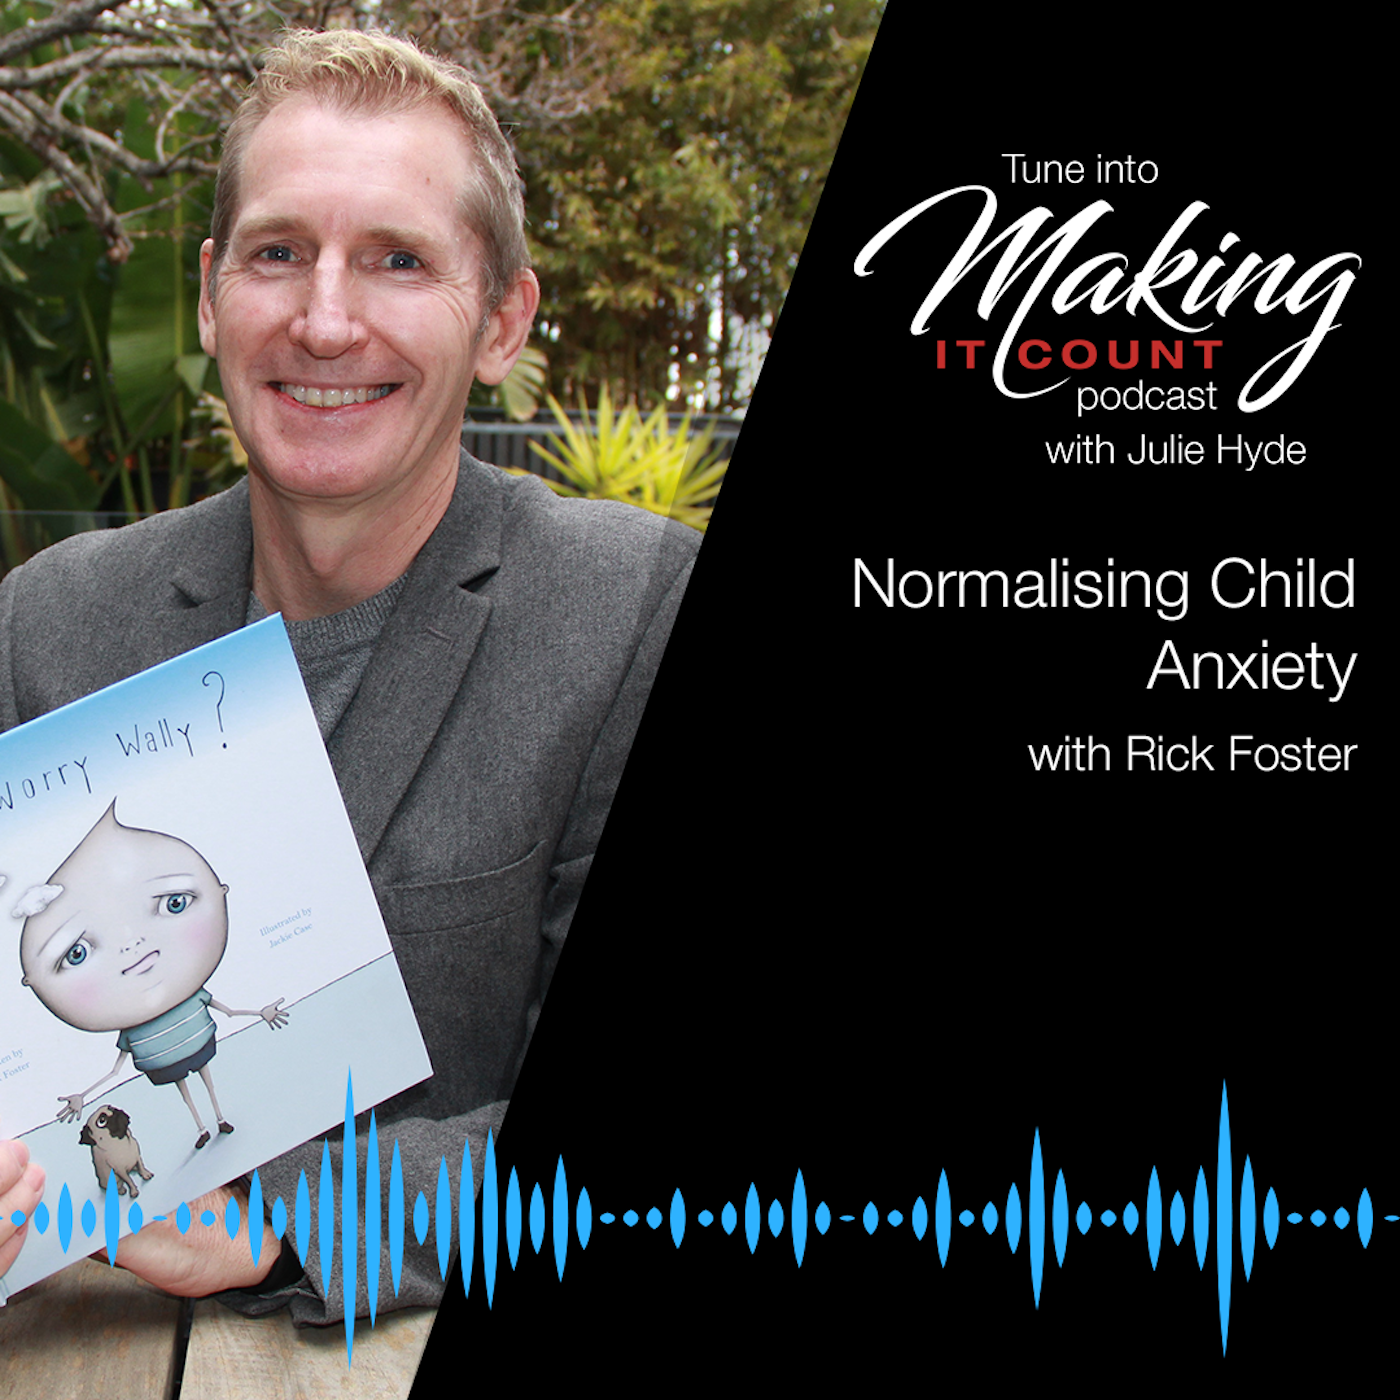 Normalising Child Anxiety - Rick Foster